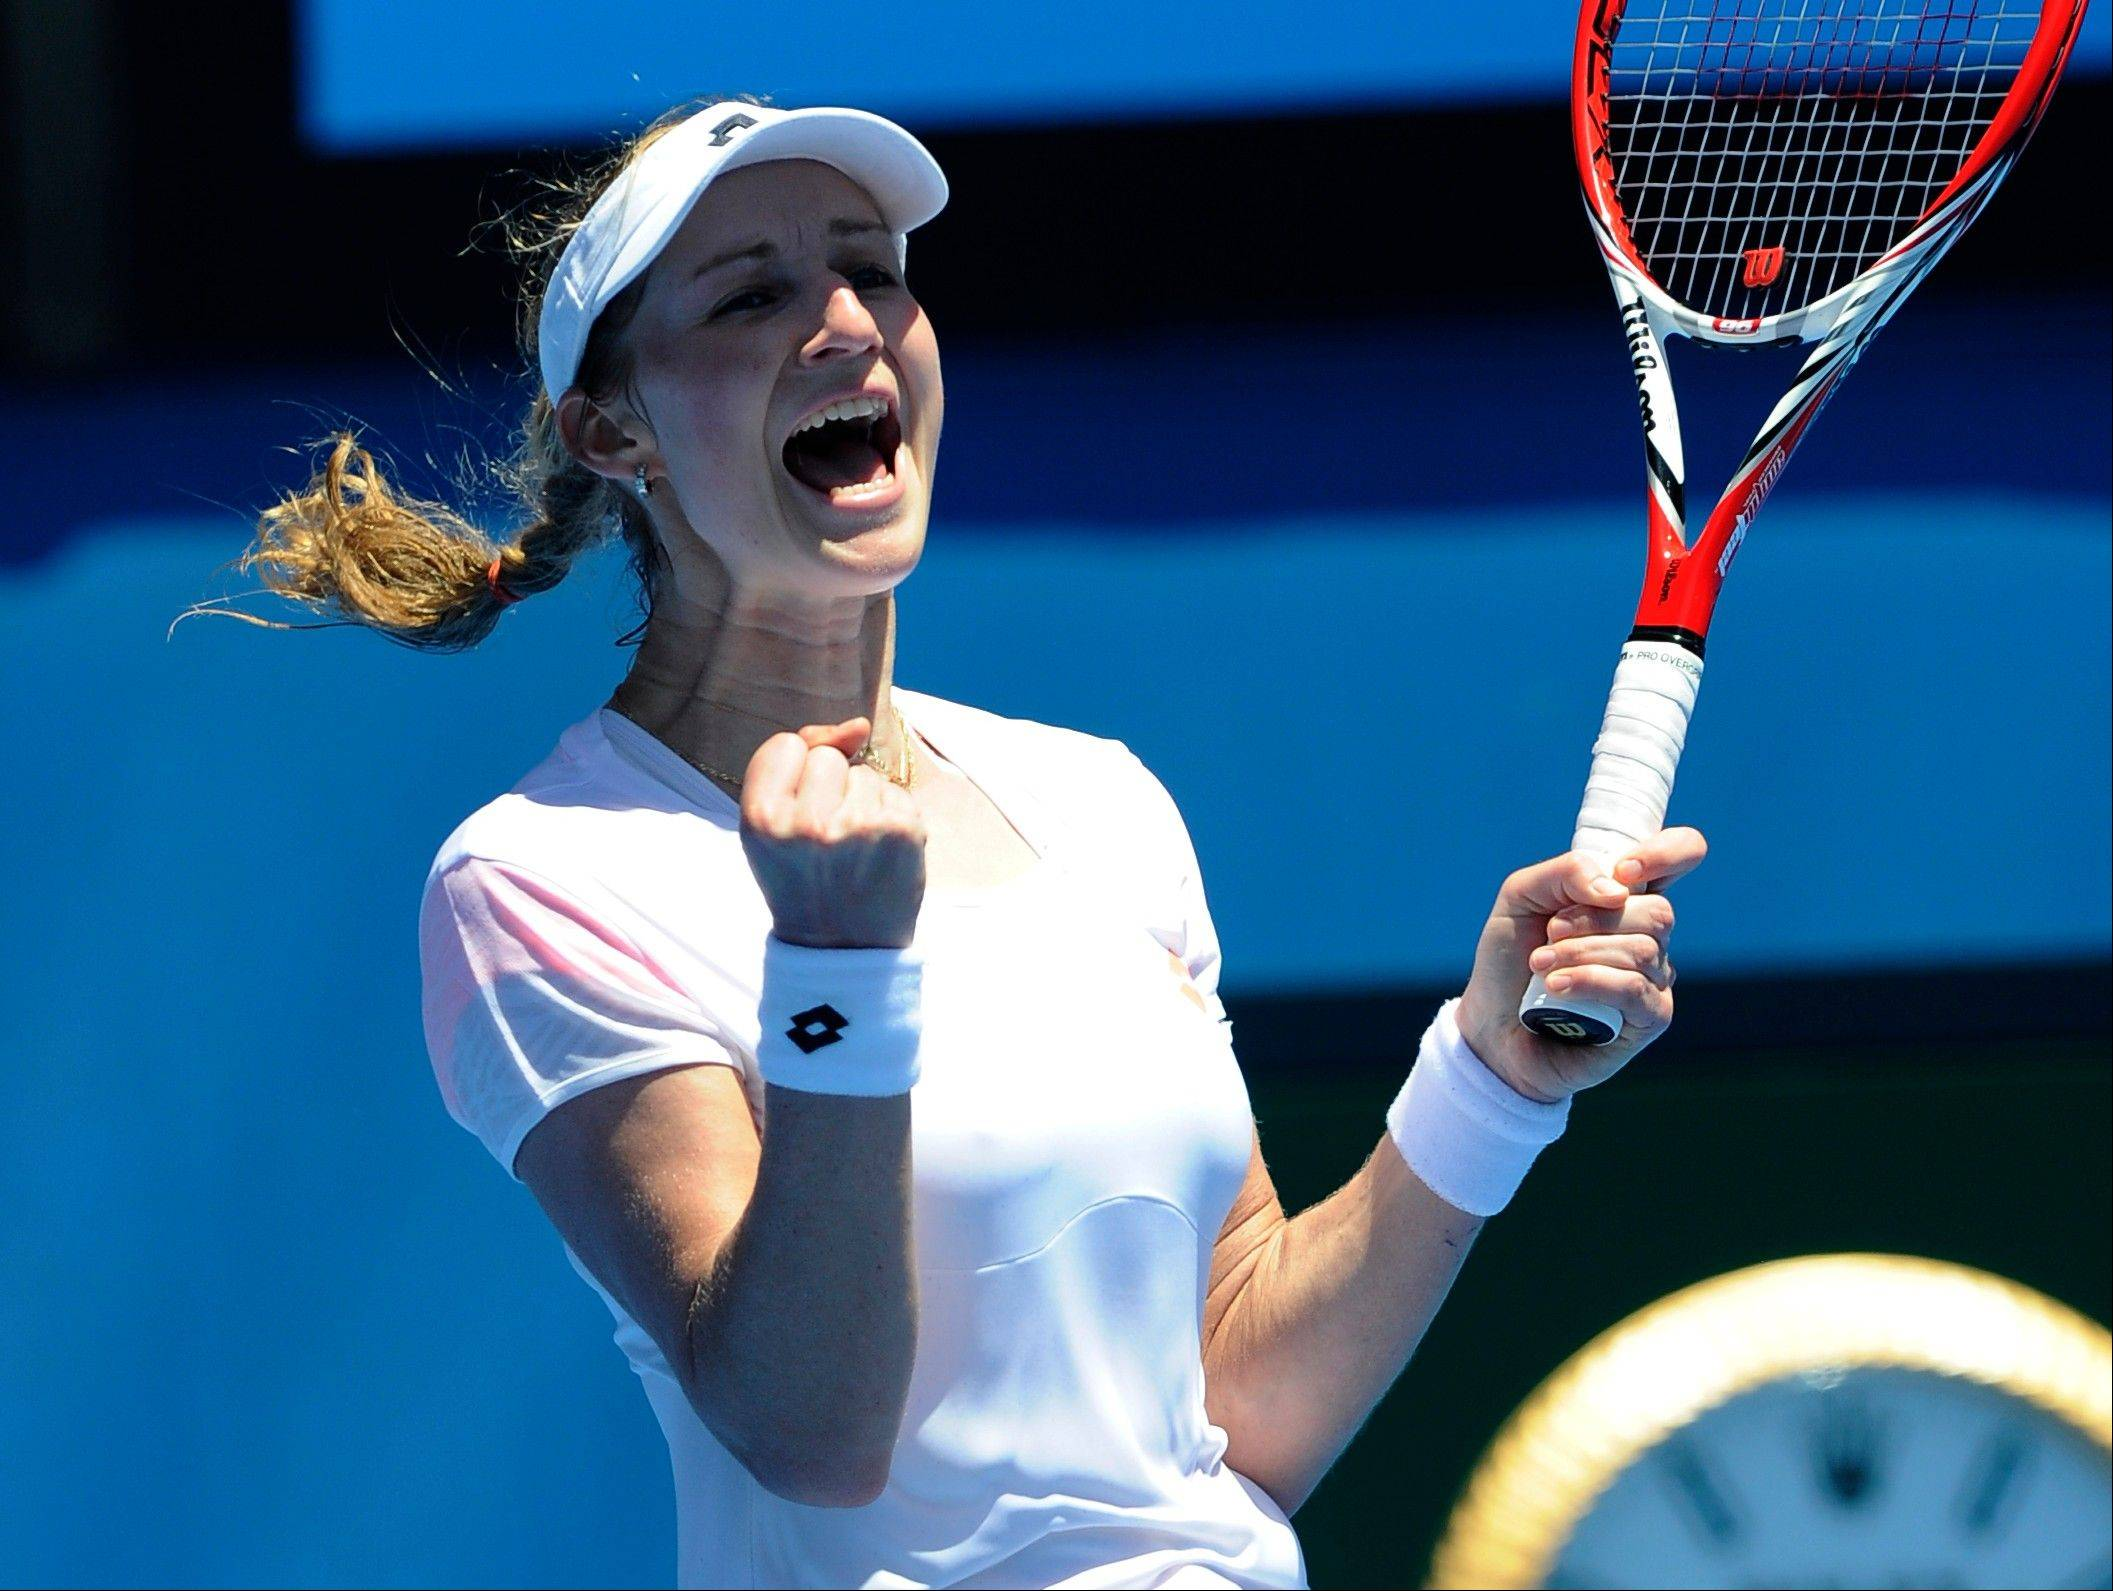 Ekaterina Makarova of Russia celebrates her win over Venus Williams of the U.S. during their first round match at the Australian Open tennis championship in Melbourne, Australia, Monday, Jan. 13, 2014. (AP Photo/Andrew Brownbill)